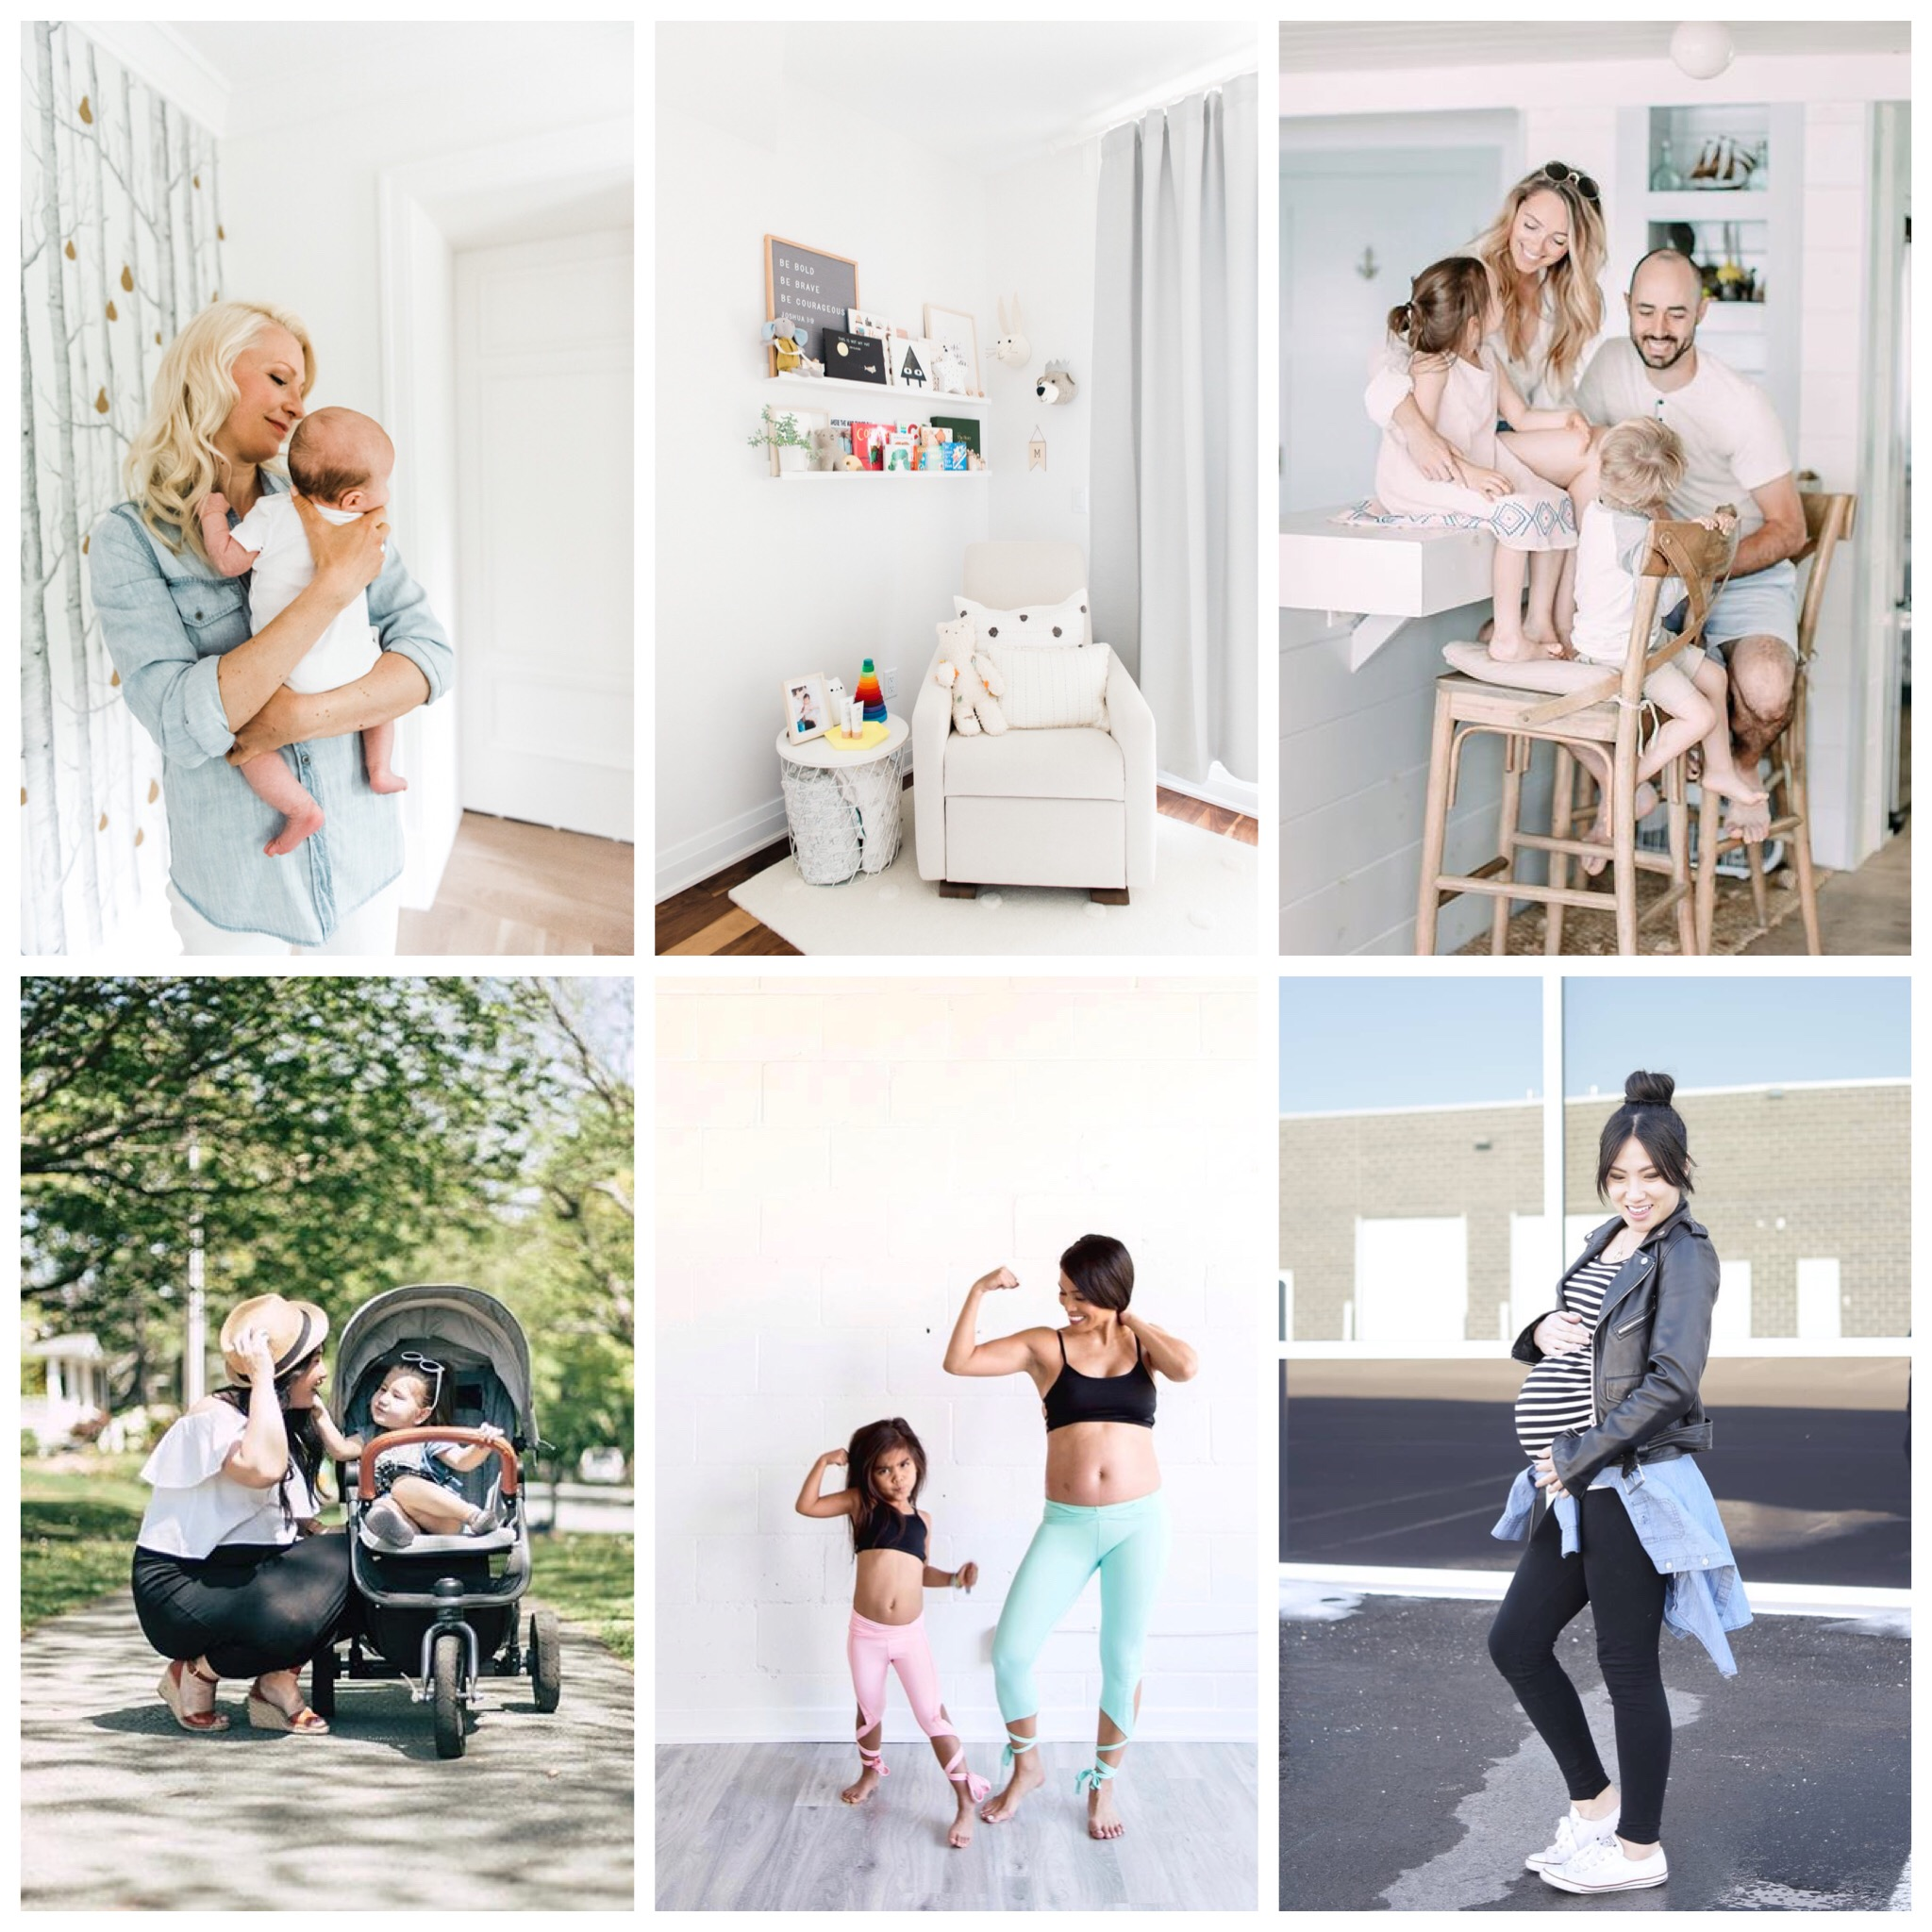 Clockwise from top-left: Abbey's Kitchen; This Wild Heart; Bonjour Bliss; PrettyLittleWings; No Tummy Mommy; Love and Sundays